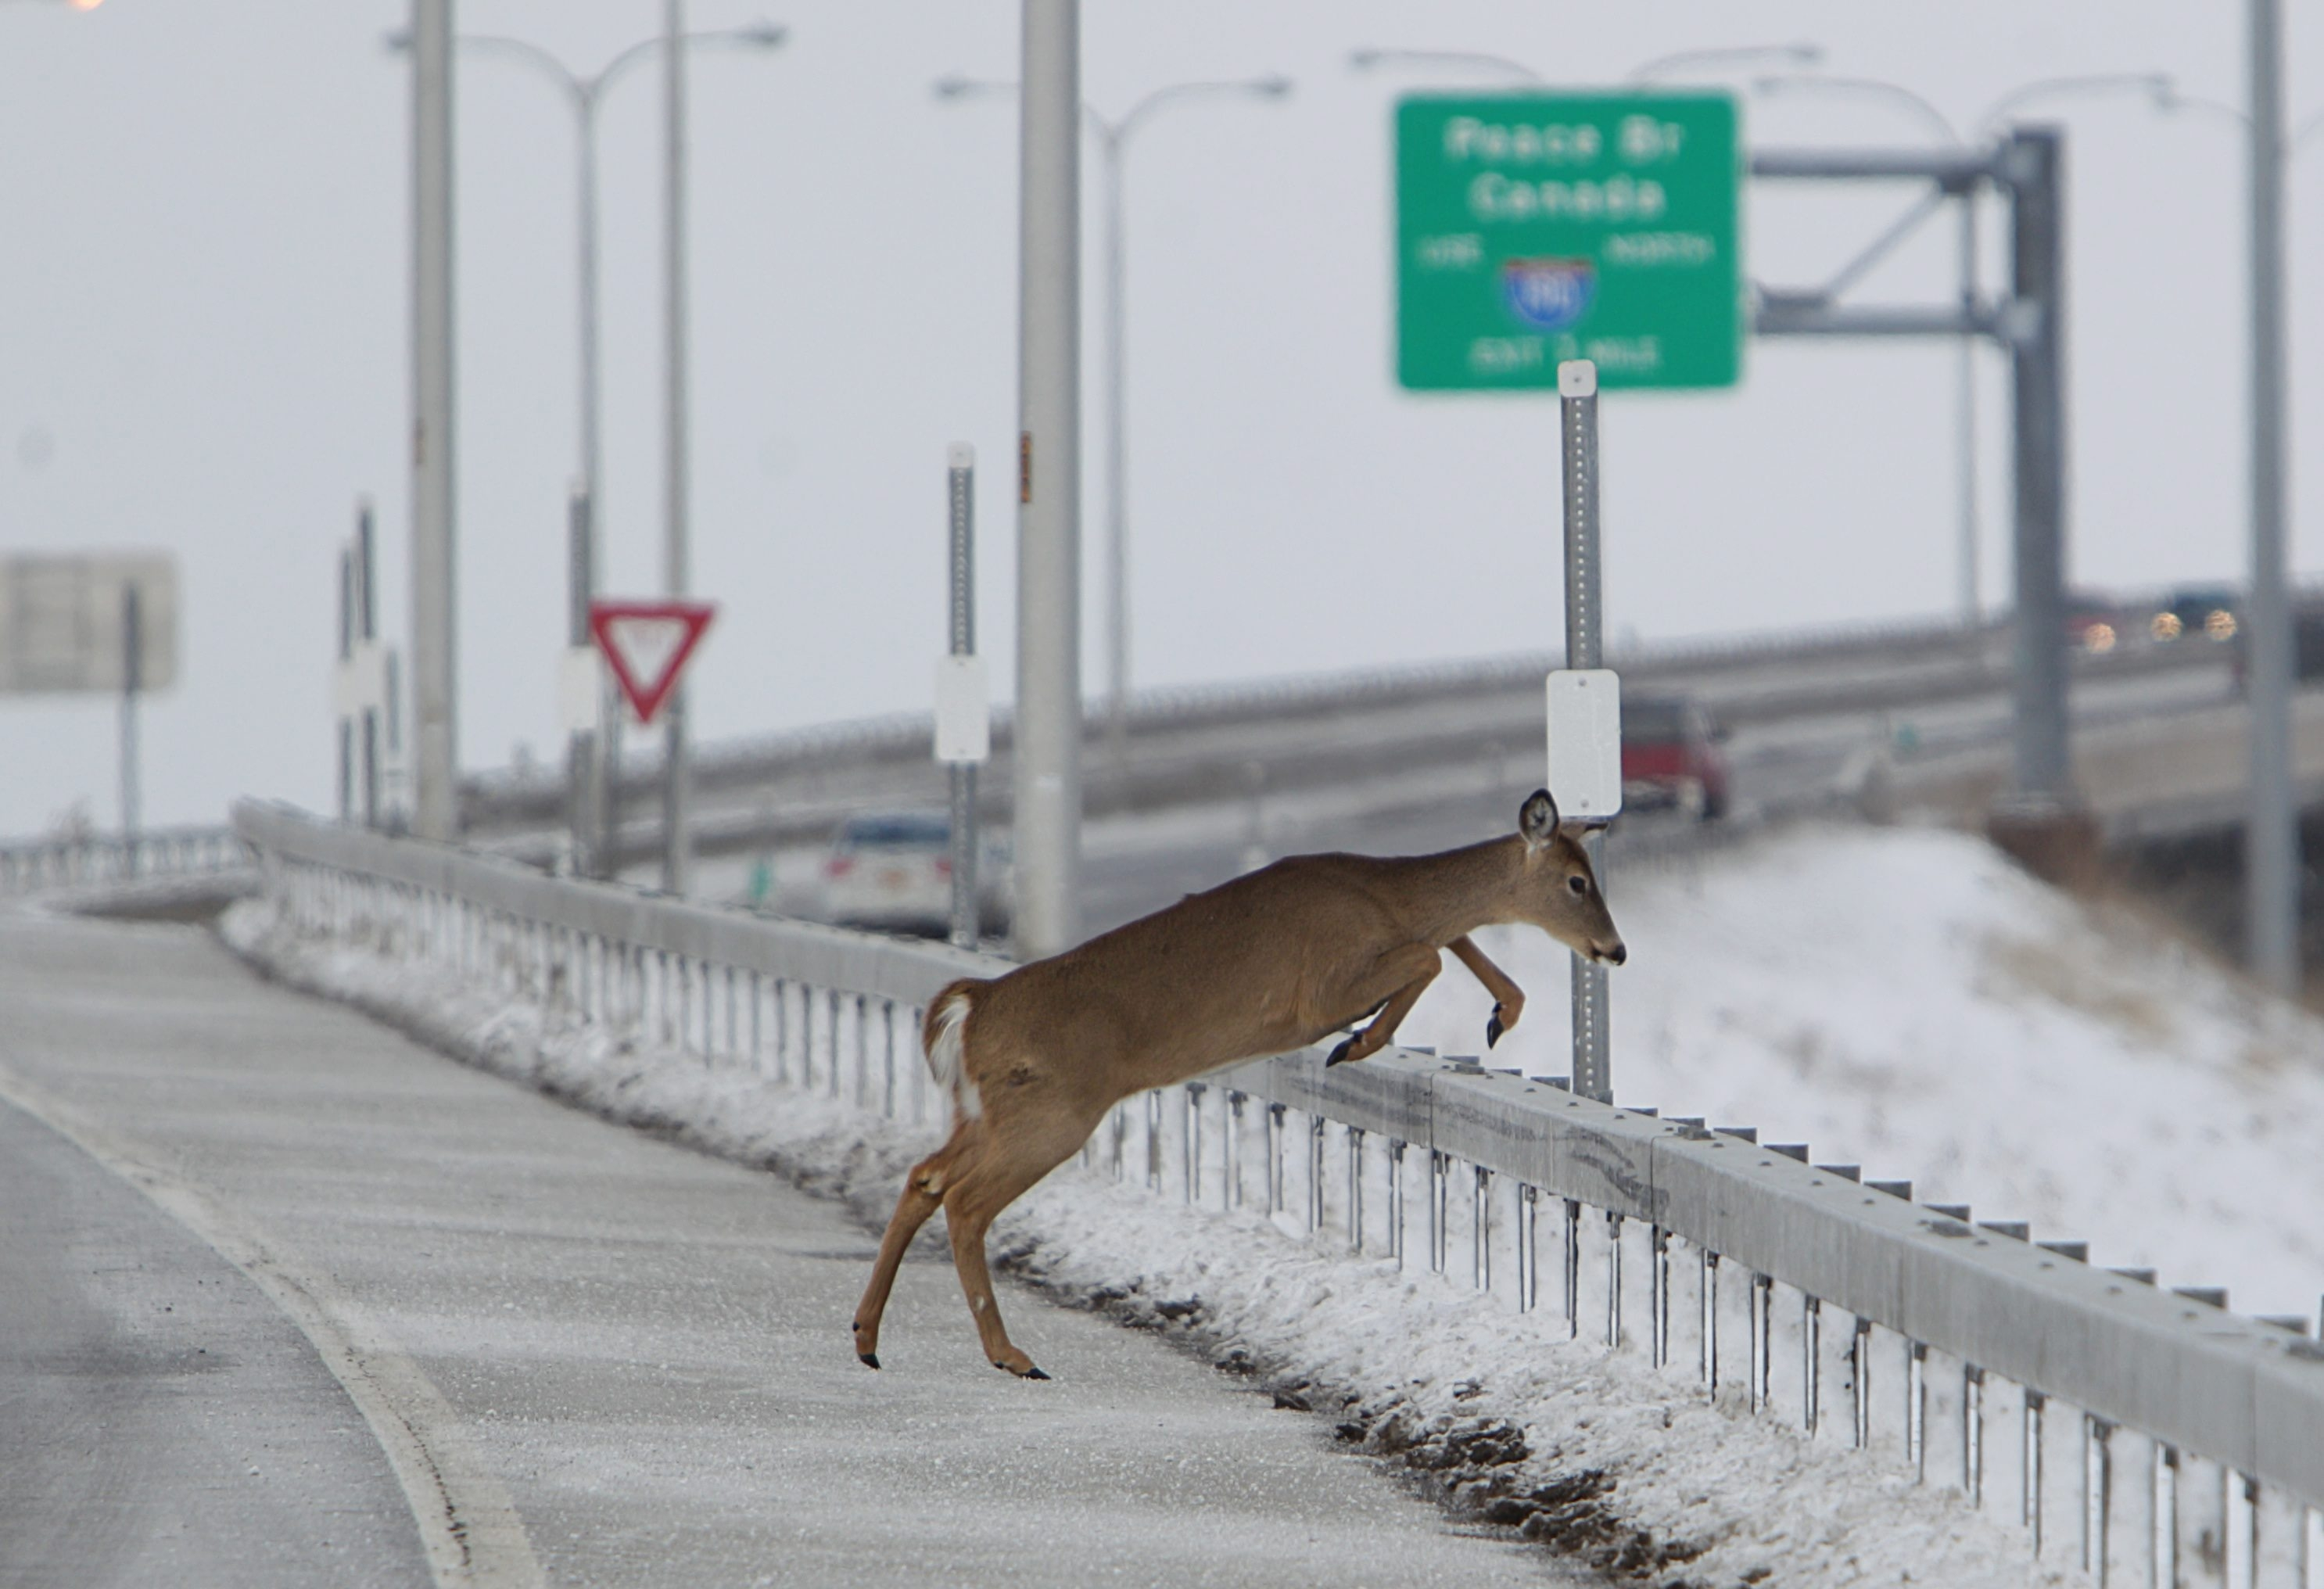 Vehicles colliding with or avoiding animals – mostly deer – account for about twice as many accidents each year in New York State as the combined total of alcohol use, falling asleep at the wheel and drugs.